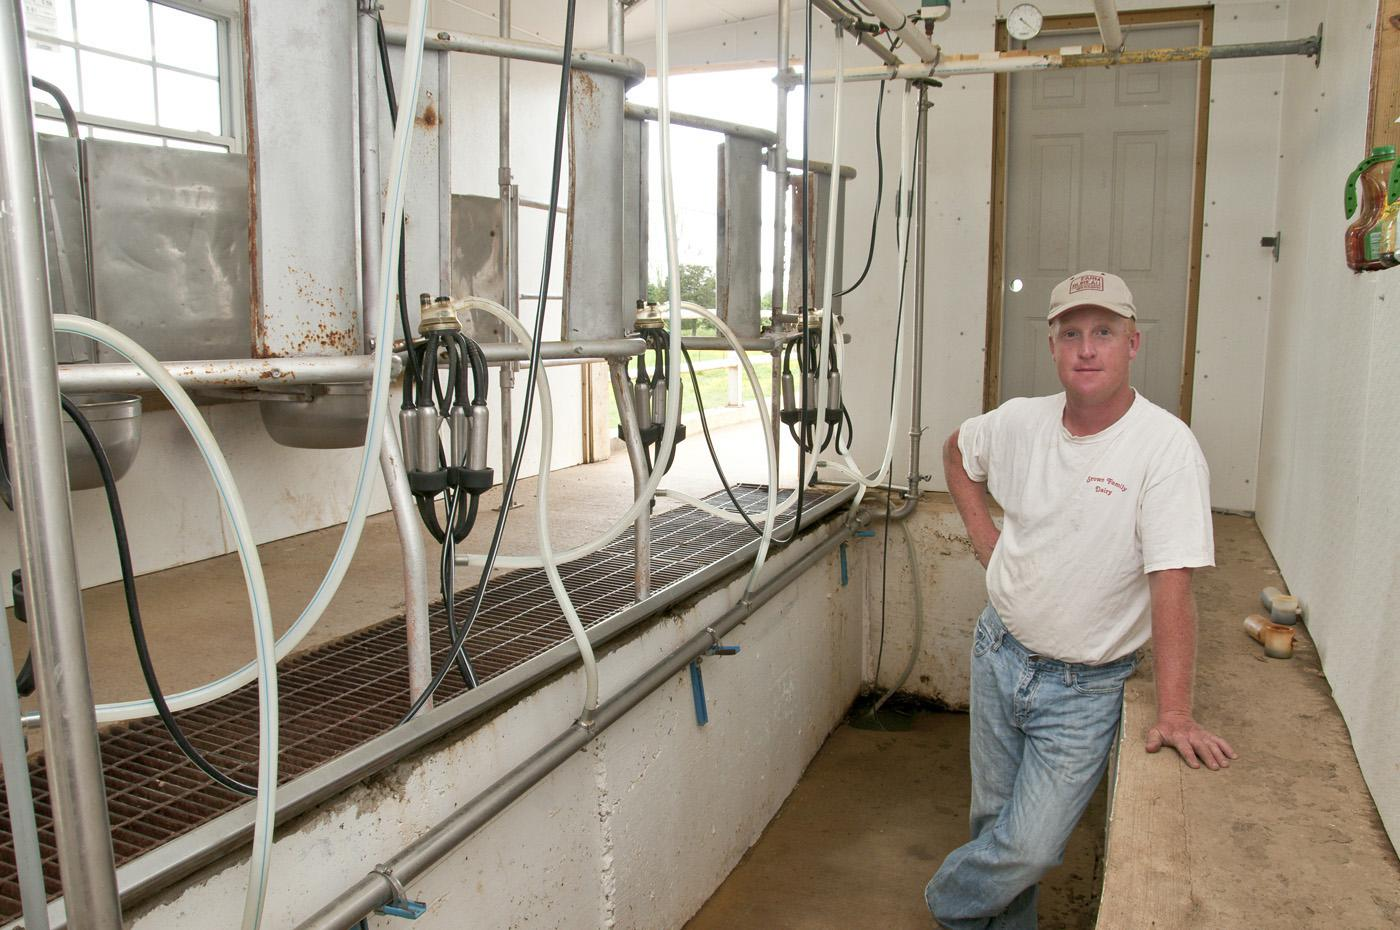 Billy Ray Brown stands on the lower level of the milking parlor he built for his Jersey cows. (Photo by Scott Corey)